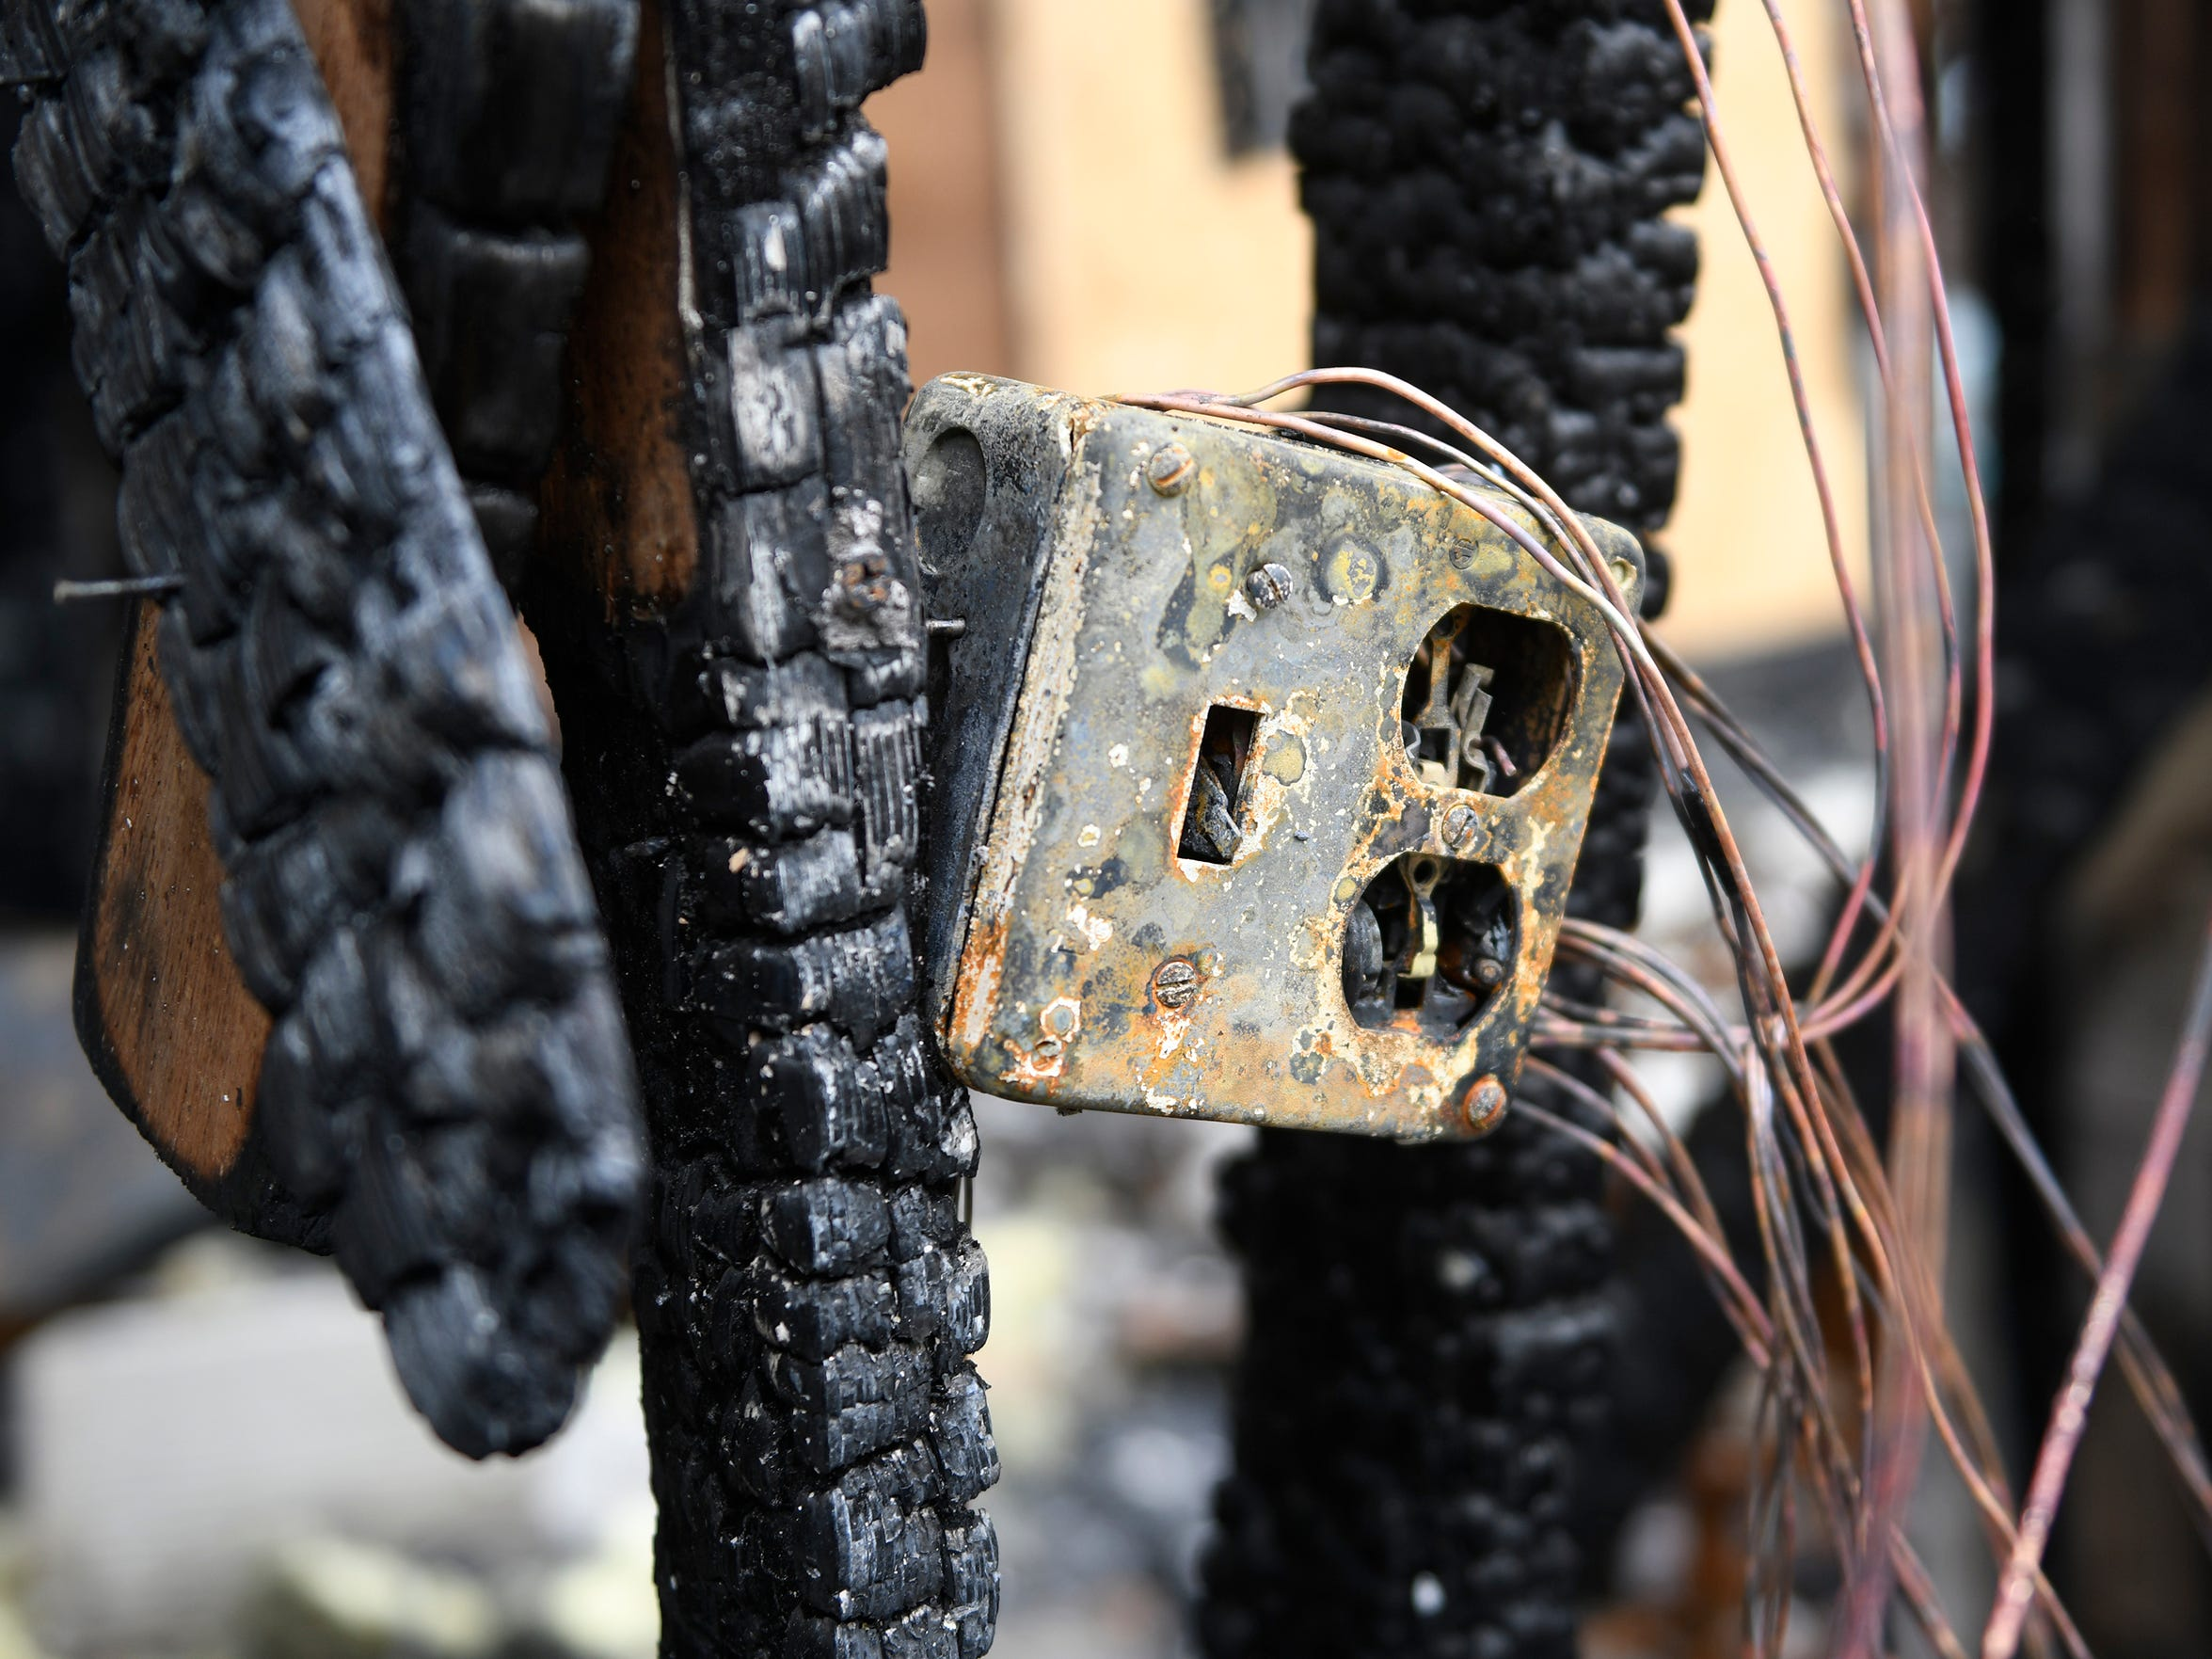 A Ring video doorbell system saved a Vineland family, living on the 1700 block of West Oak Road, from a raging house fire on Monday, May 6, 2019.